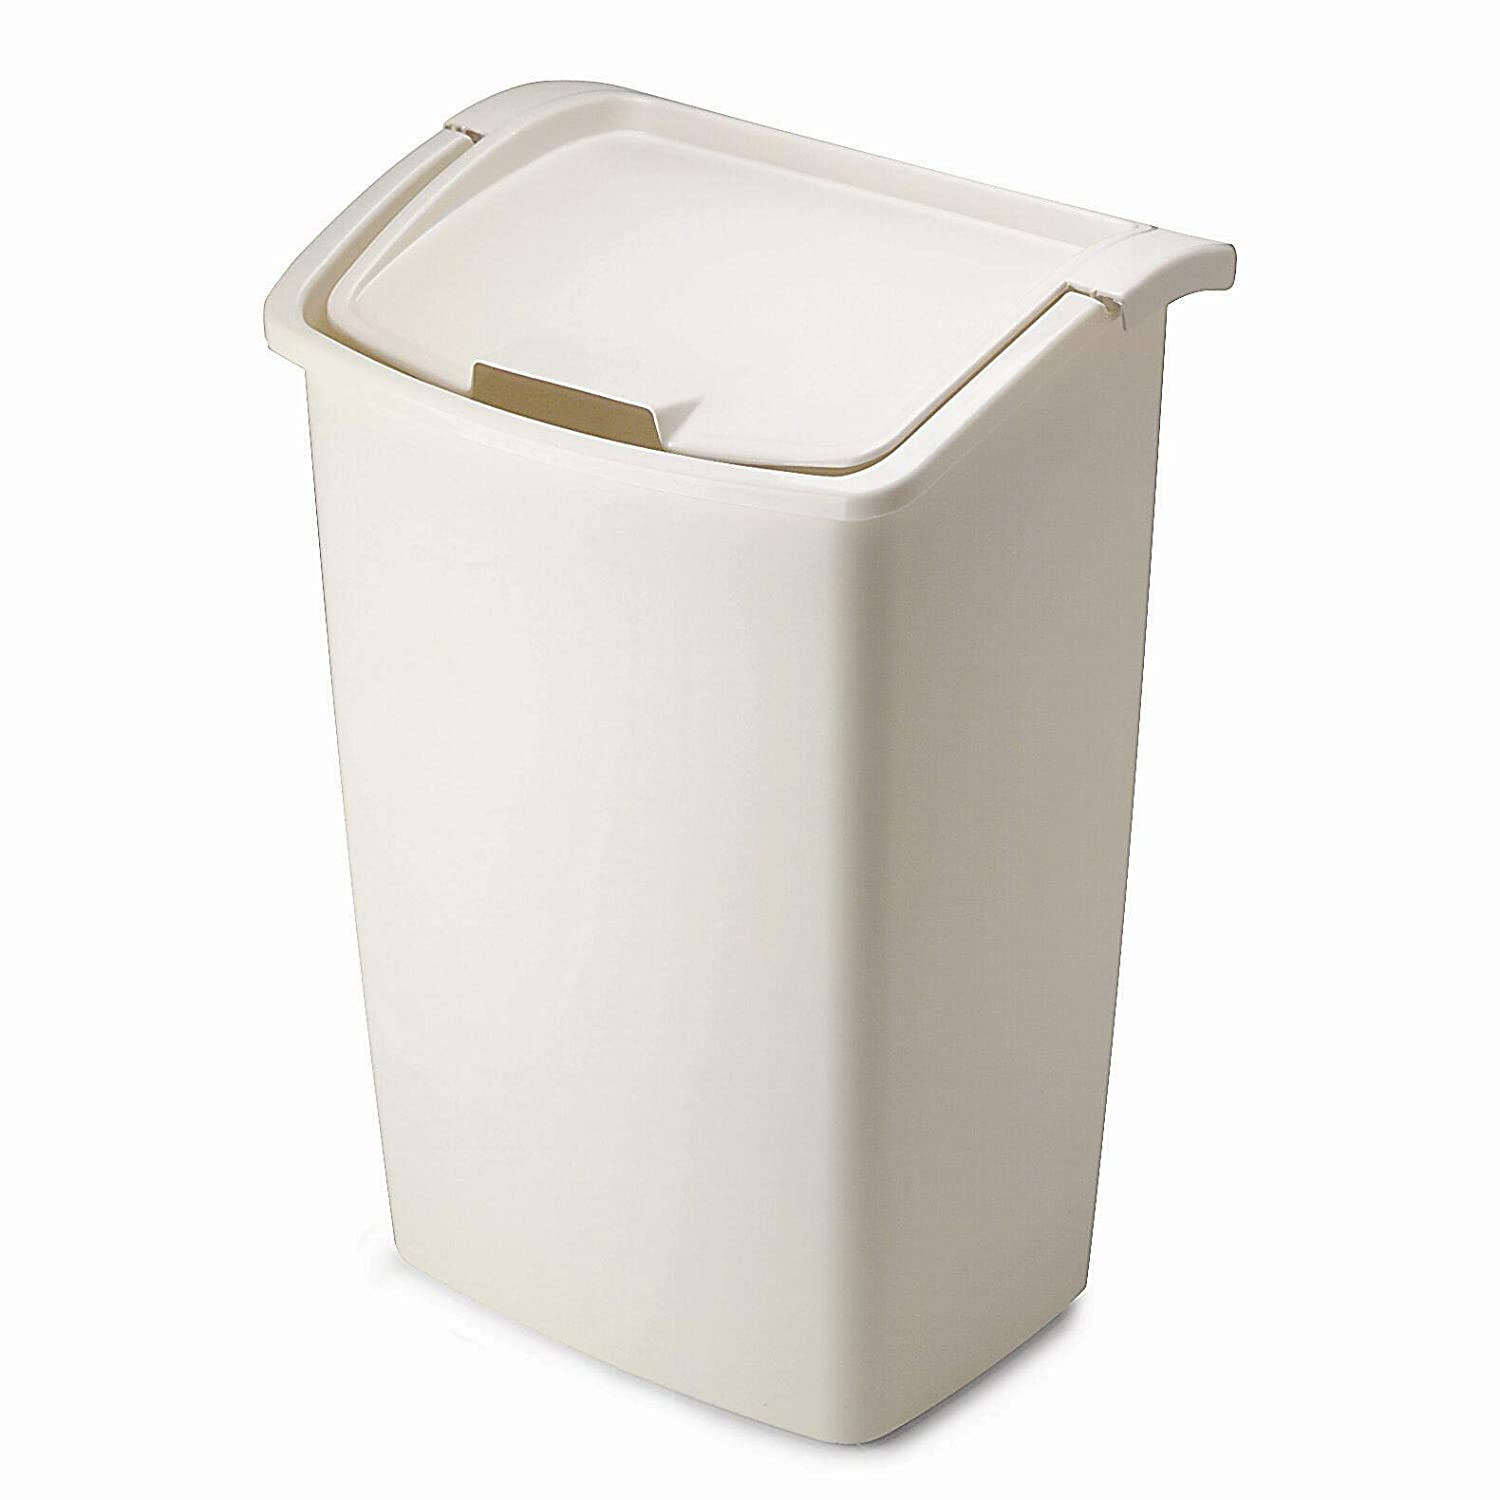 Rubbermaid FG280300BISQU Dual-Action Swing Lid Trash Can for Home, Kitchen, and Bathroom Garbage, 11.25 Gallon, Off-White Bisque, 45-quart,